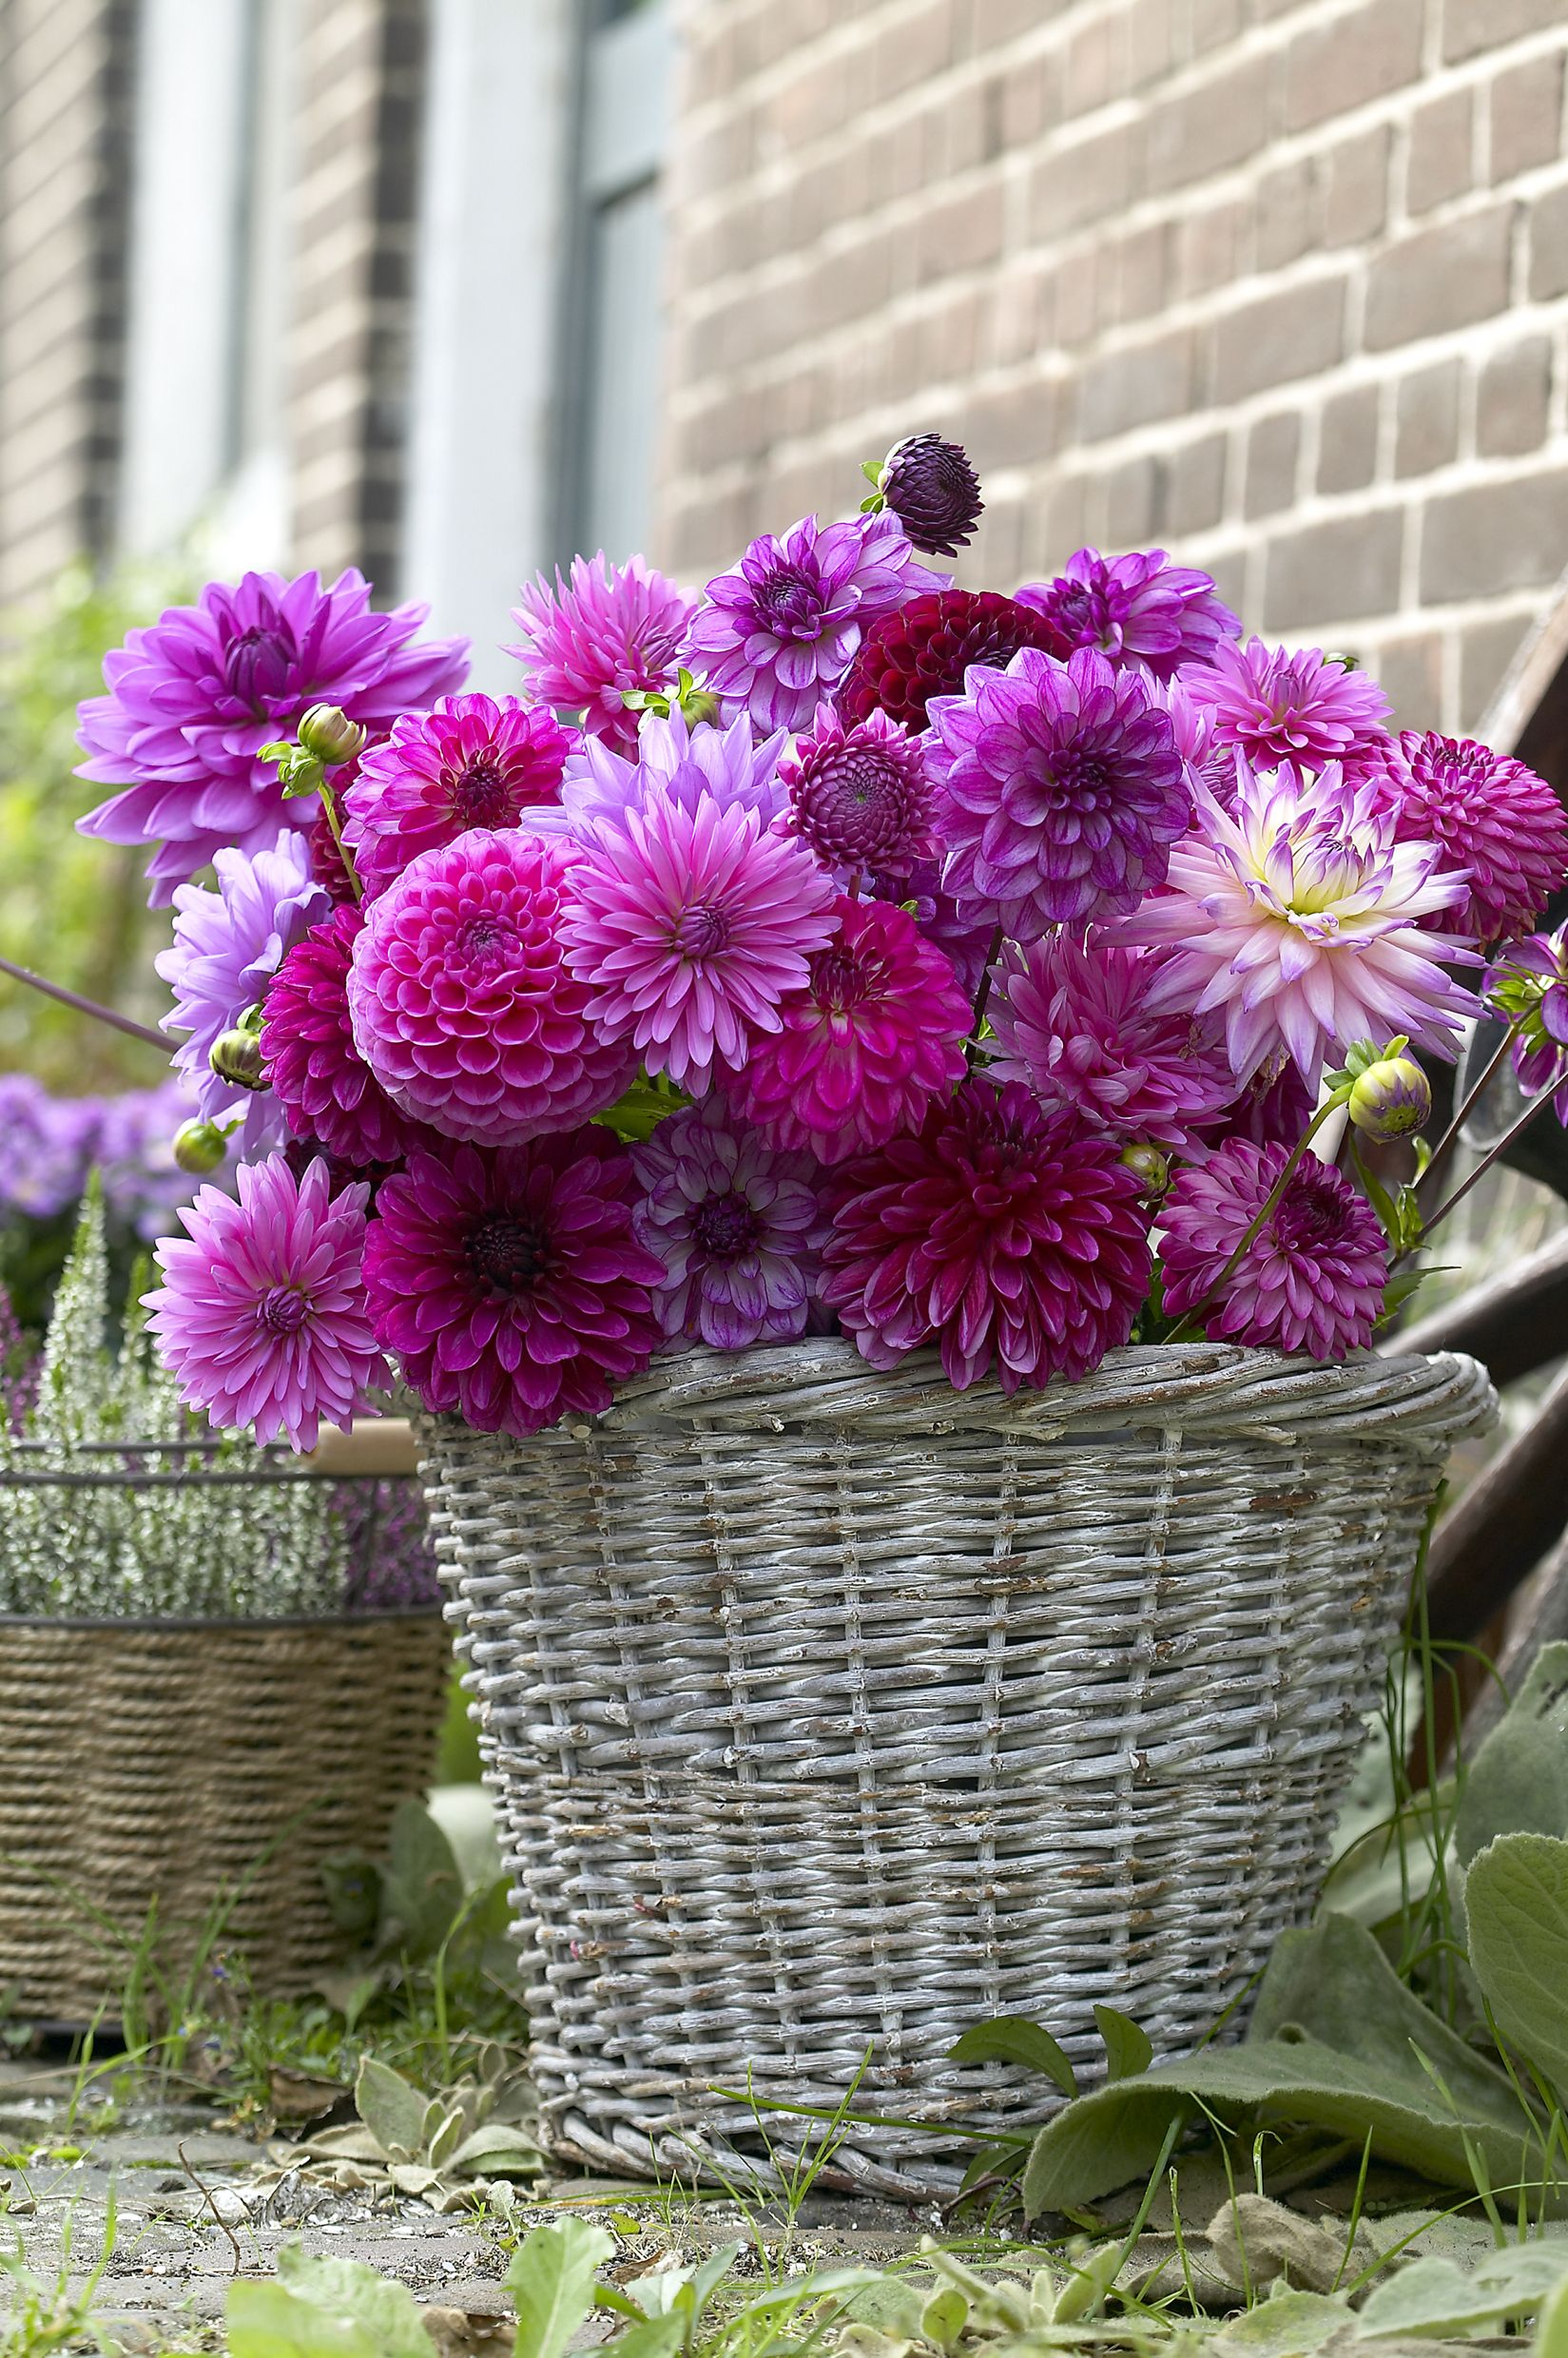 Different types of Dahlias, like Ball, Decorative, Dinnerplate, Pompon and Cactus, look great when paired together!